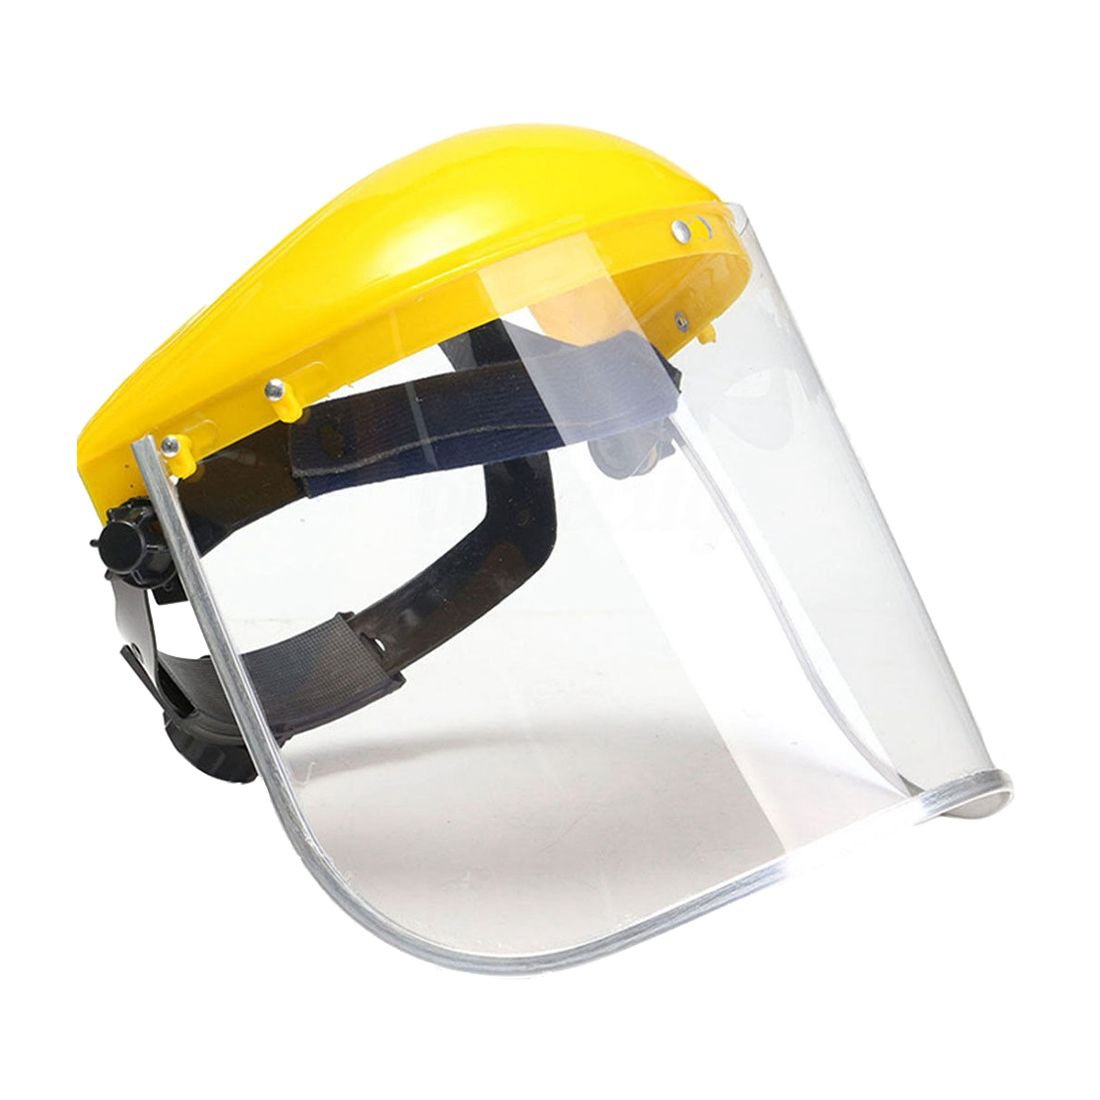 TOOGOO(R) 1x Clear Safety Grinding Face Shield Screen Mask For Visors Eye Face Protection